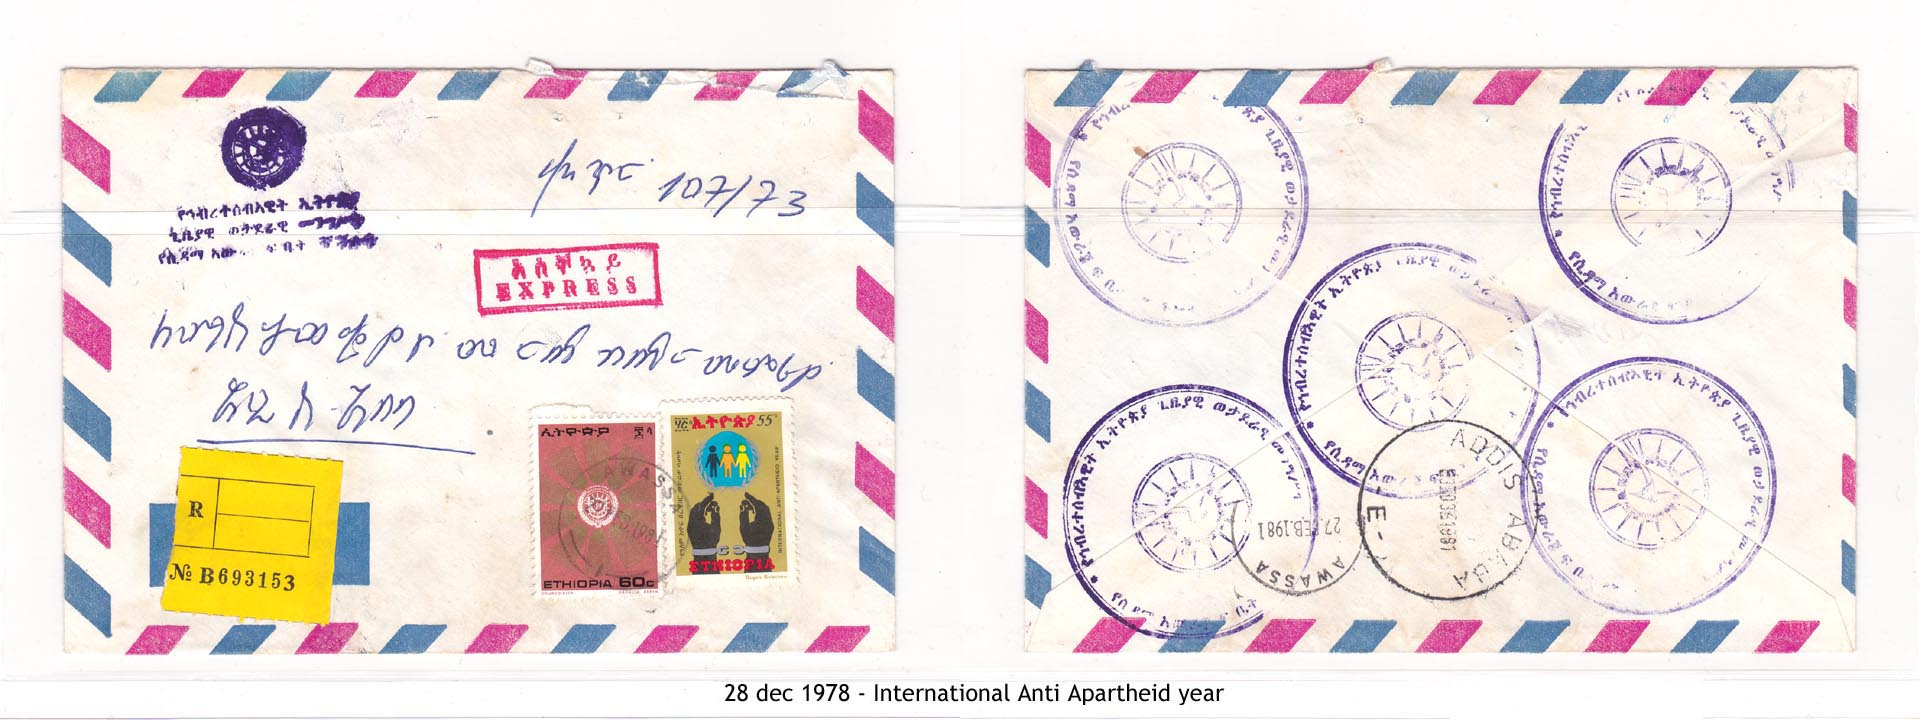 19781228 - International anti apartheid year z